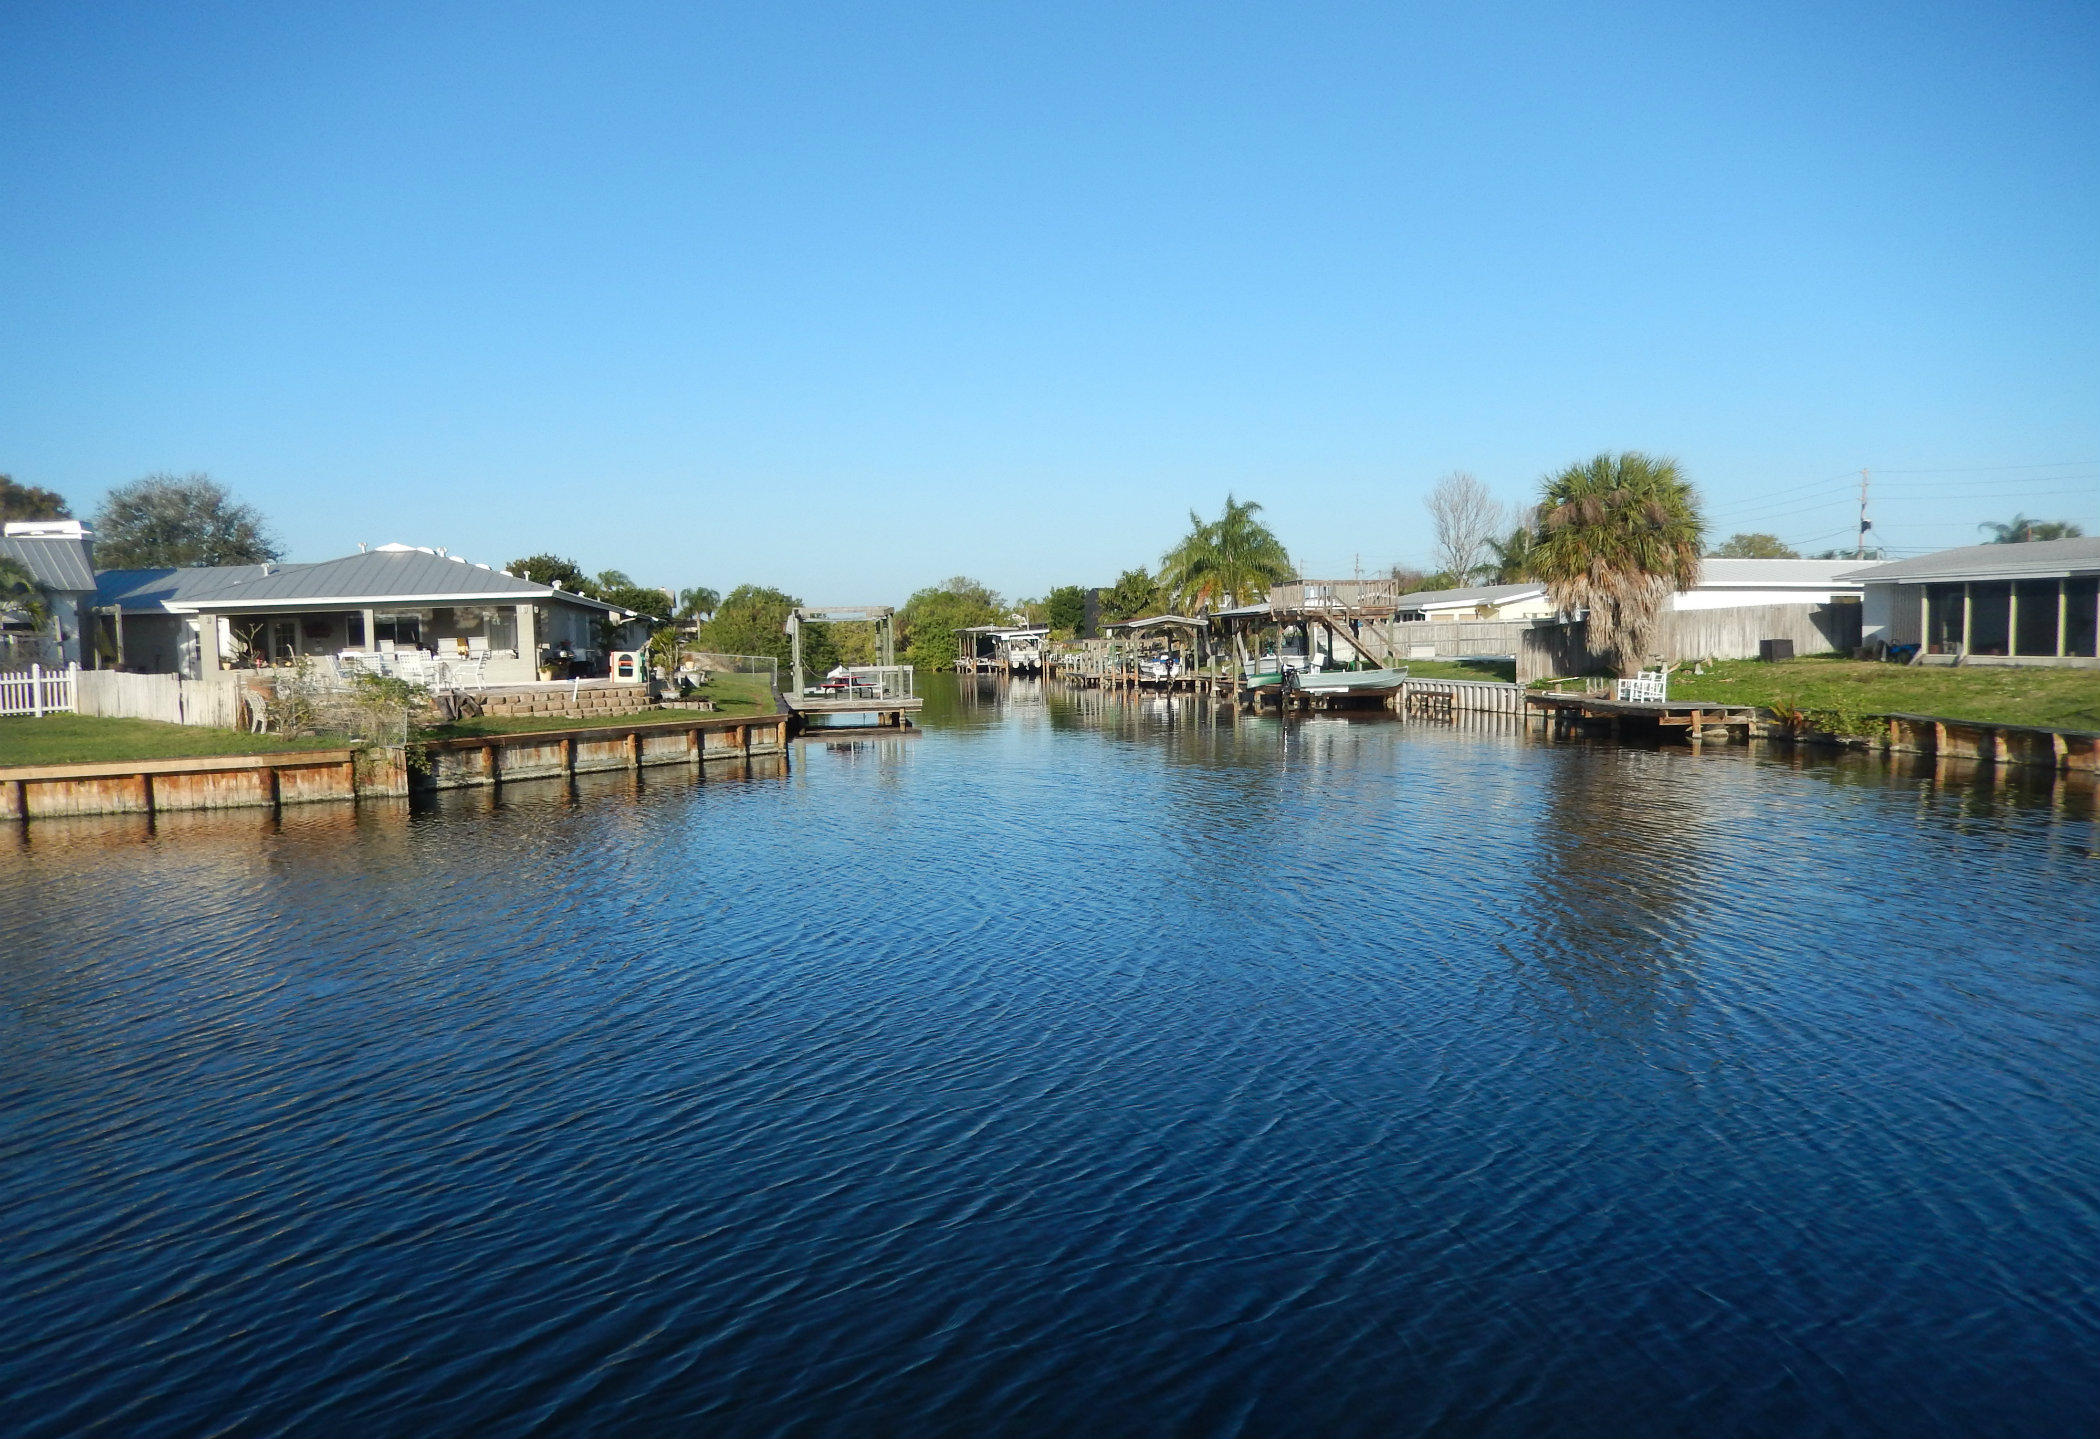 merritt-island-waterfront-px Palm Harbor Village on bradenton village, florida village, sunrise village,